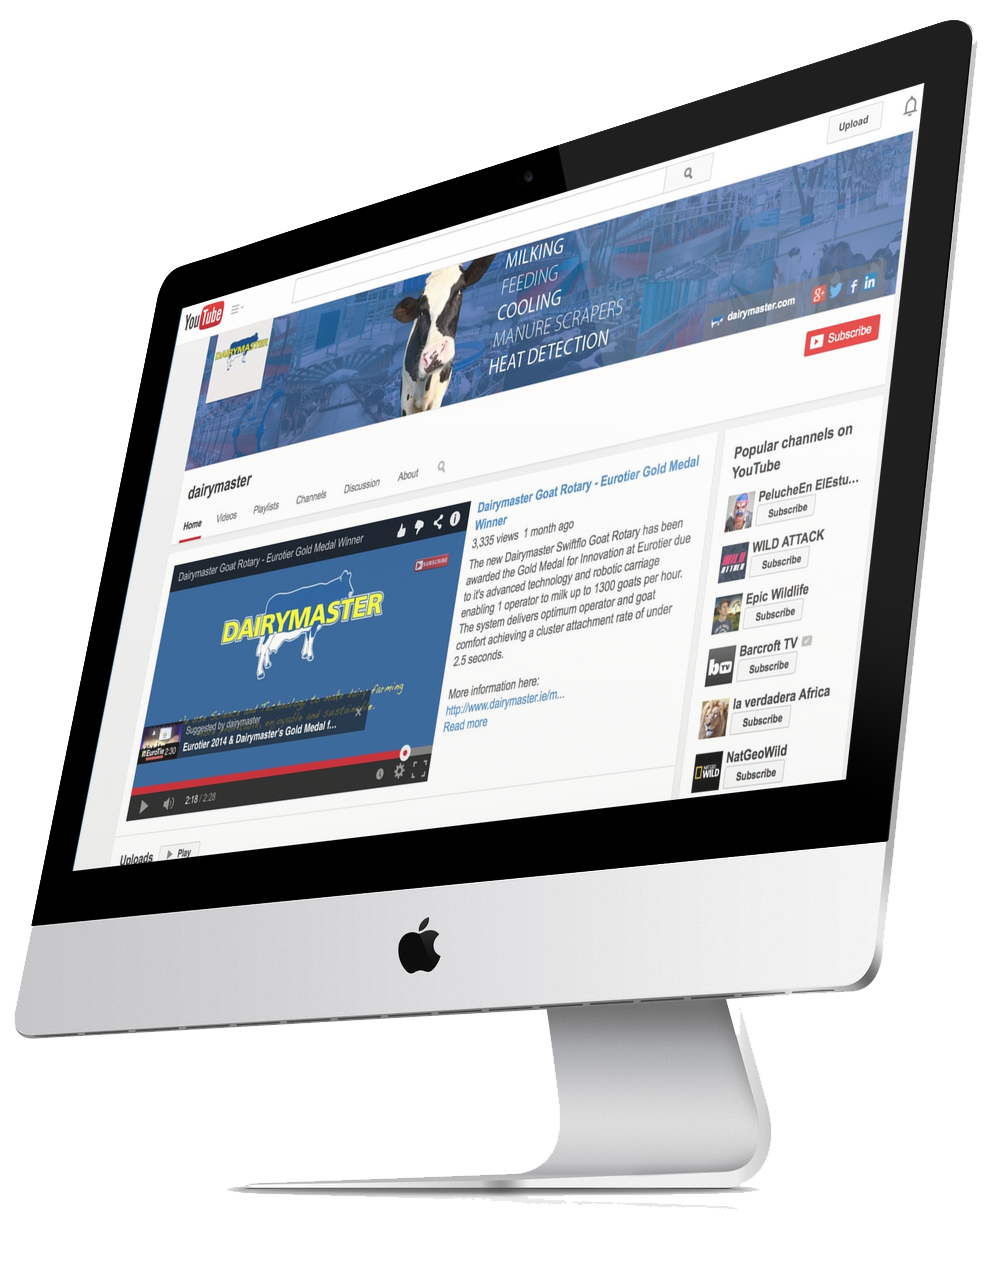 Dairymaster Youtube Channel